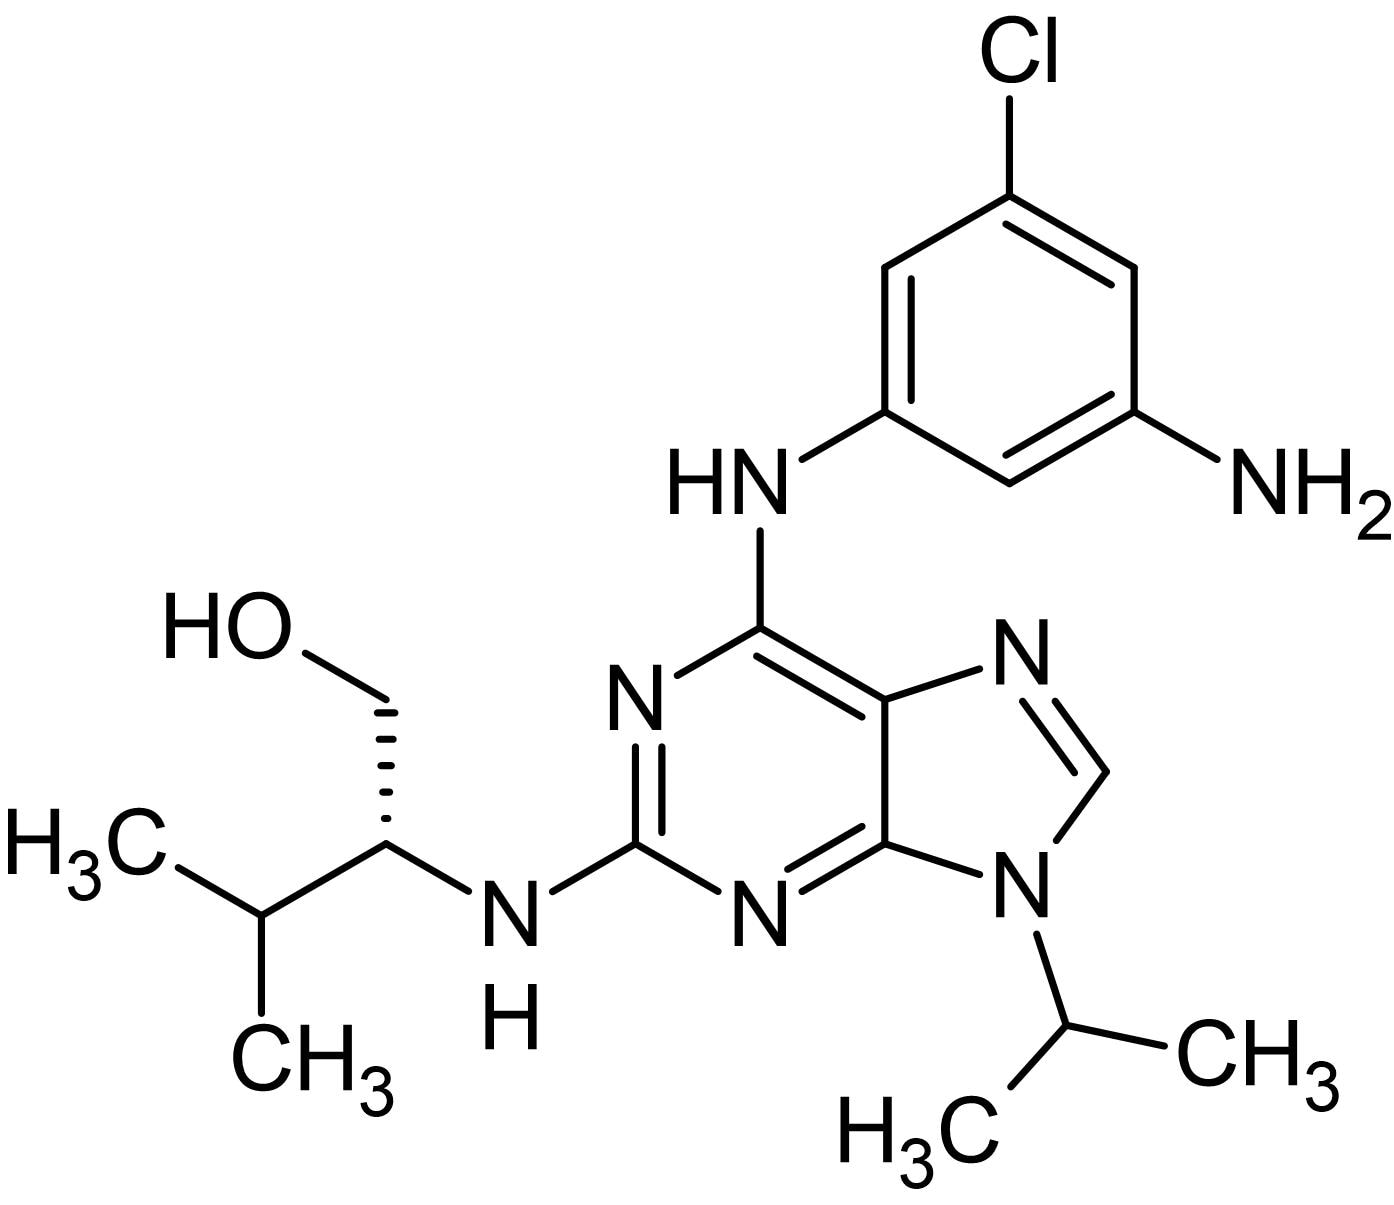 Chemical Structure - Aminopurvalanol A, cyclin-dependent kinase inhibitor (ab145052)